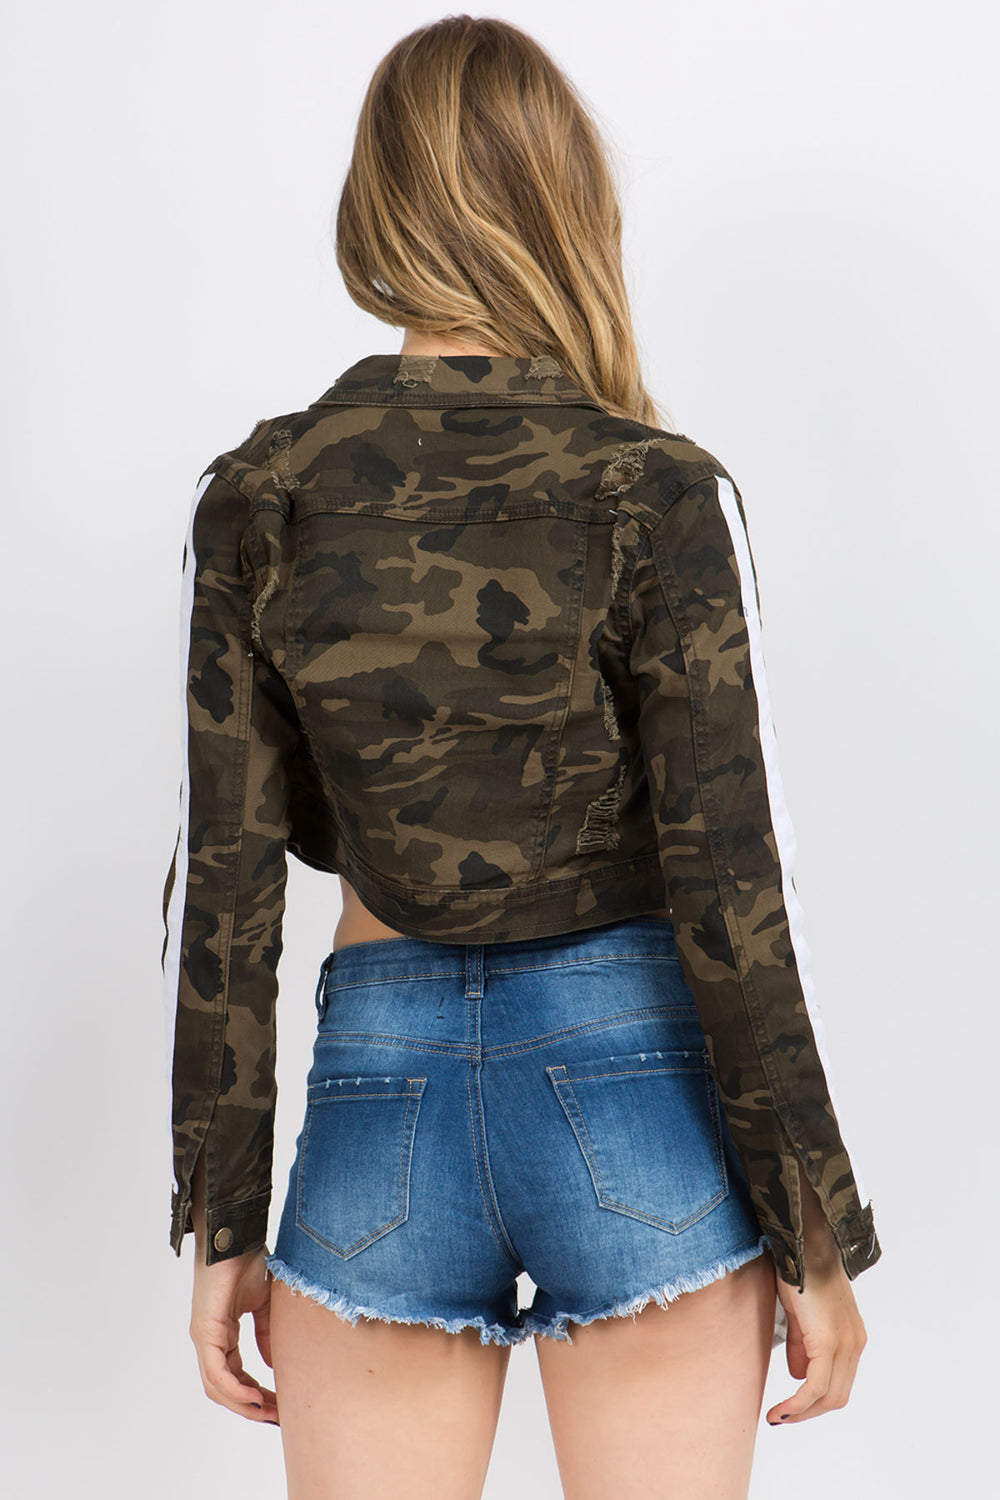 Casual Destroyed Button Down Denim Color Jacket - Camo  l  LoveModa